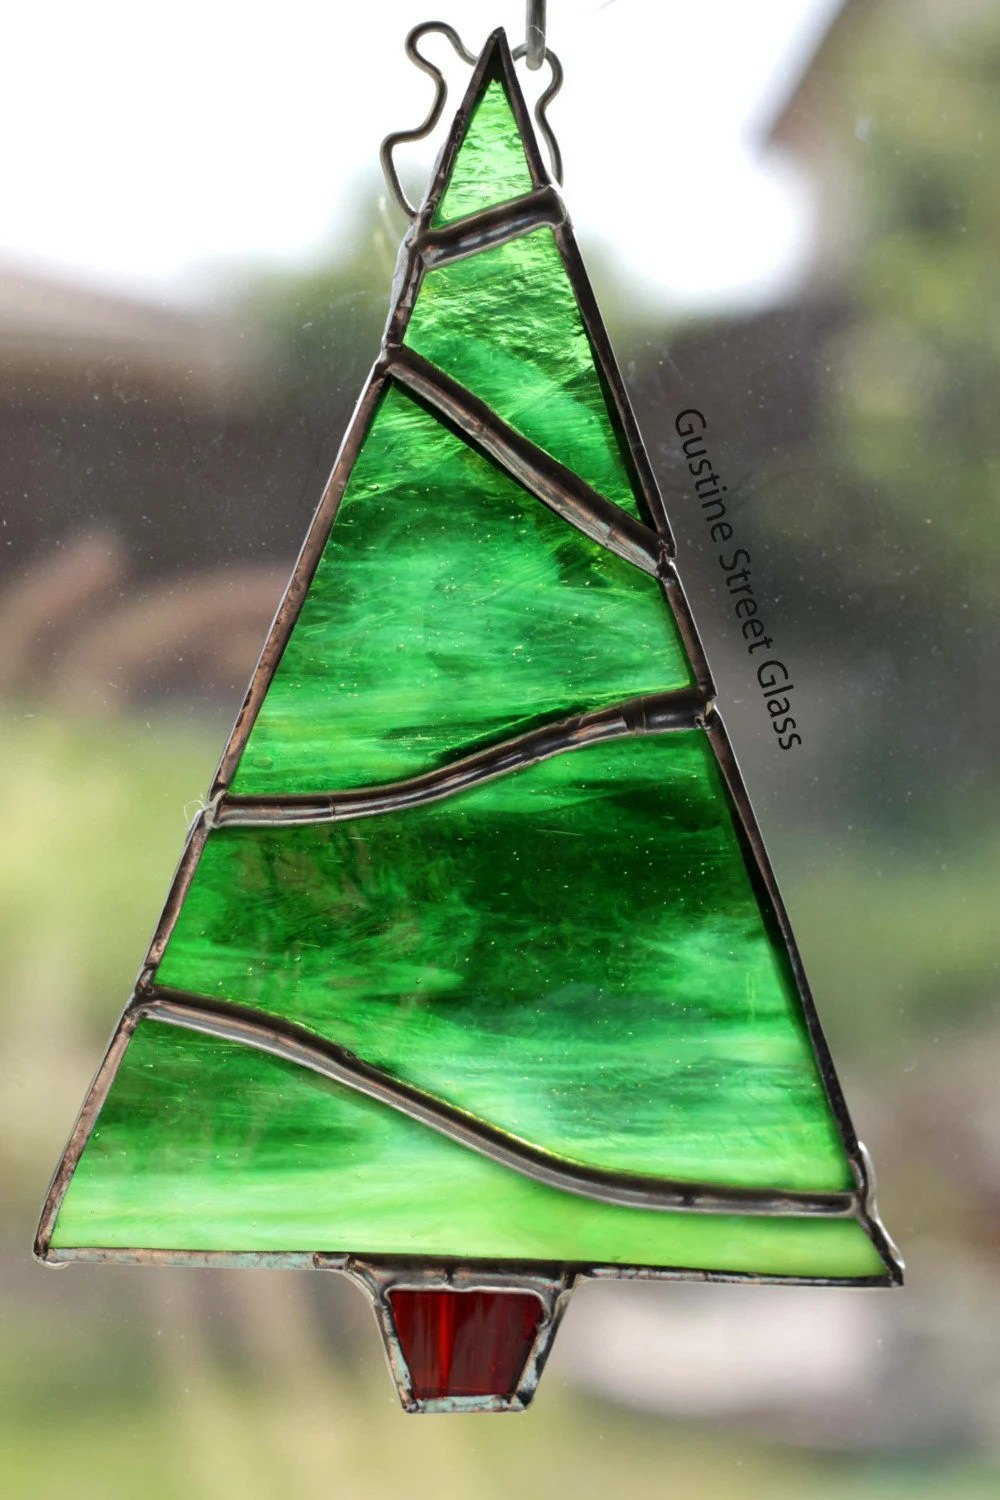 Green Stained Glass Christmas Tree 5.5 x 3.5 inches